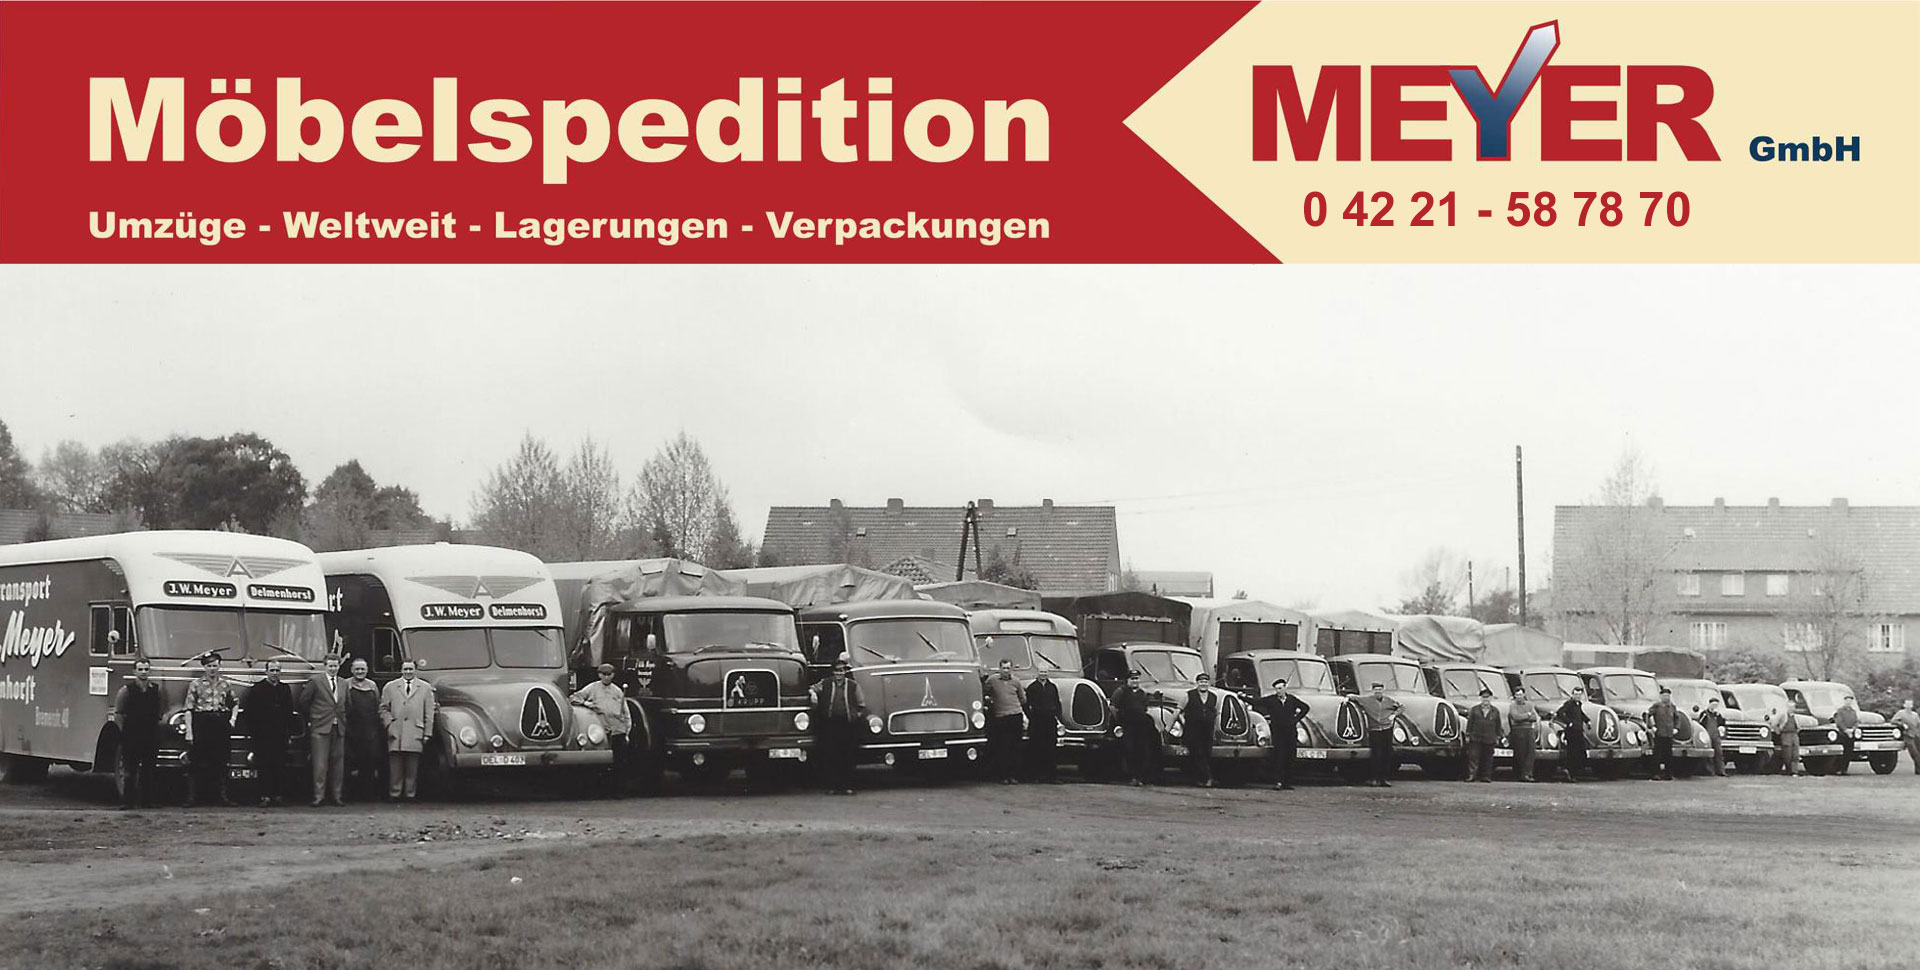 Möbelspedition Meyer